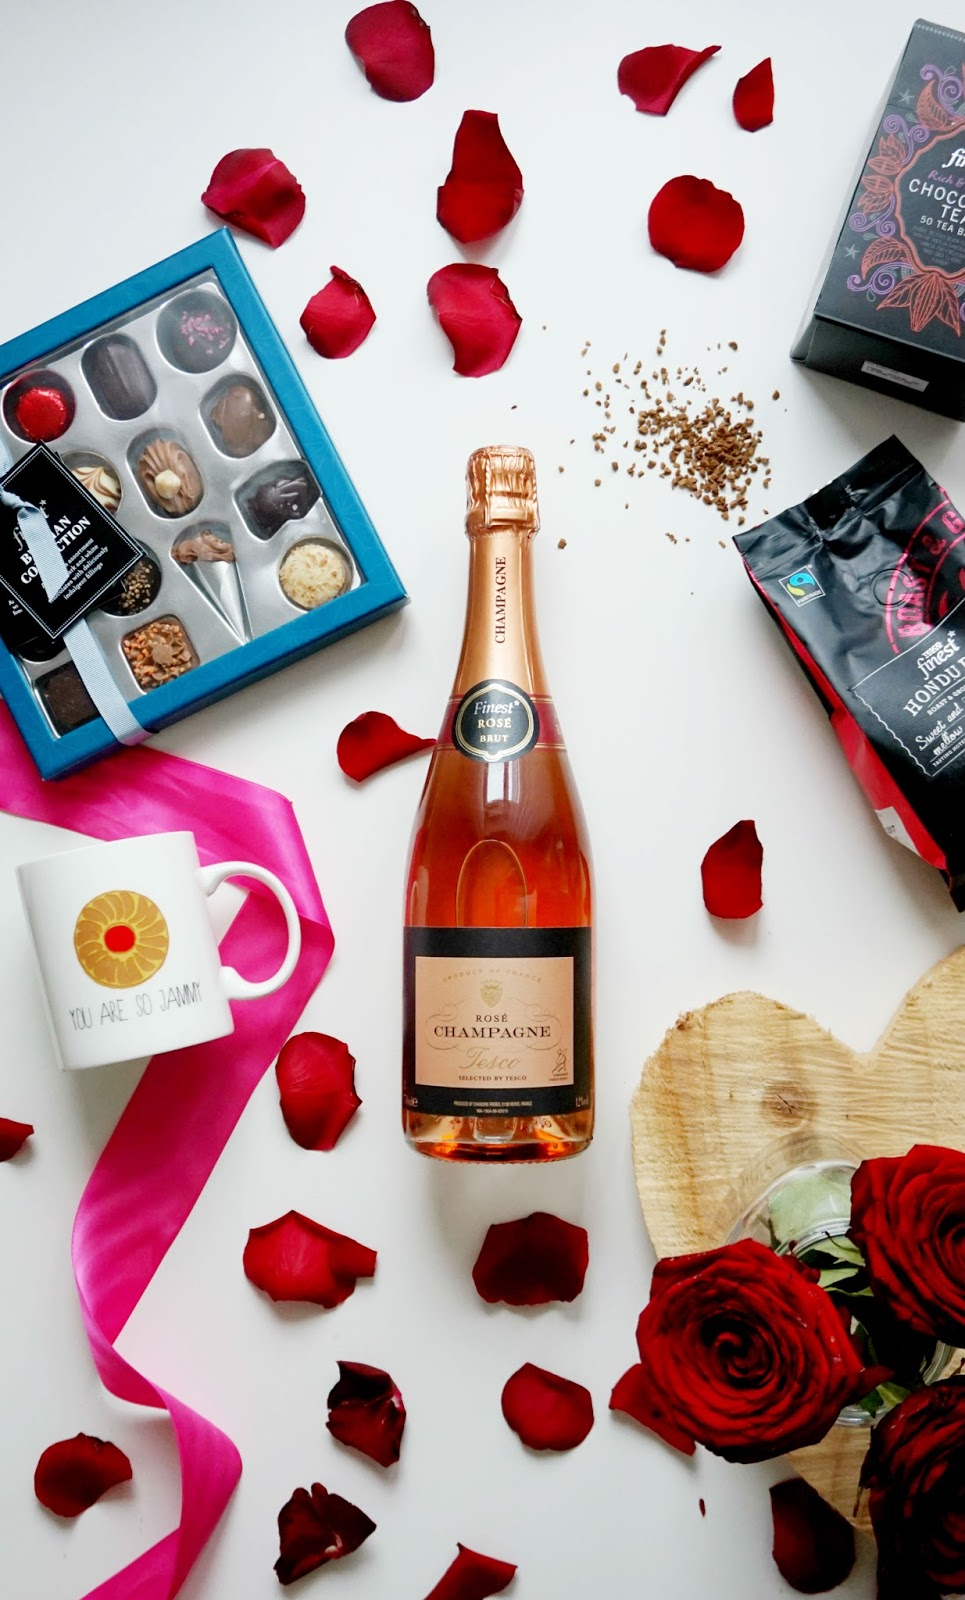 galentines day tesco food hamper flowers best friend champagne chocolate celebrate galentines day photography tesco